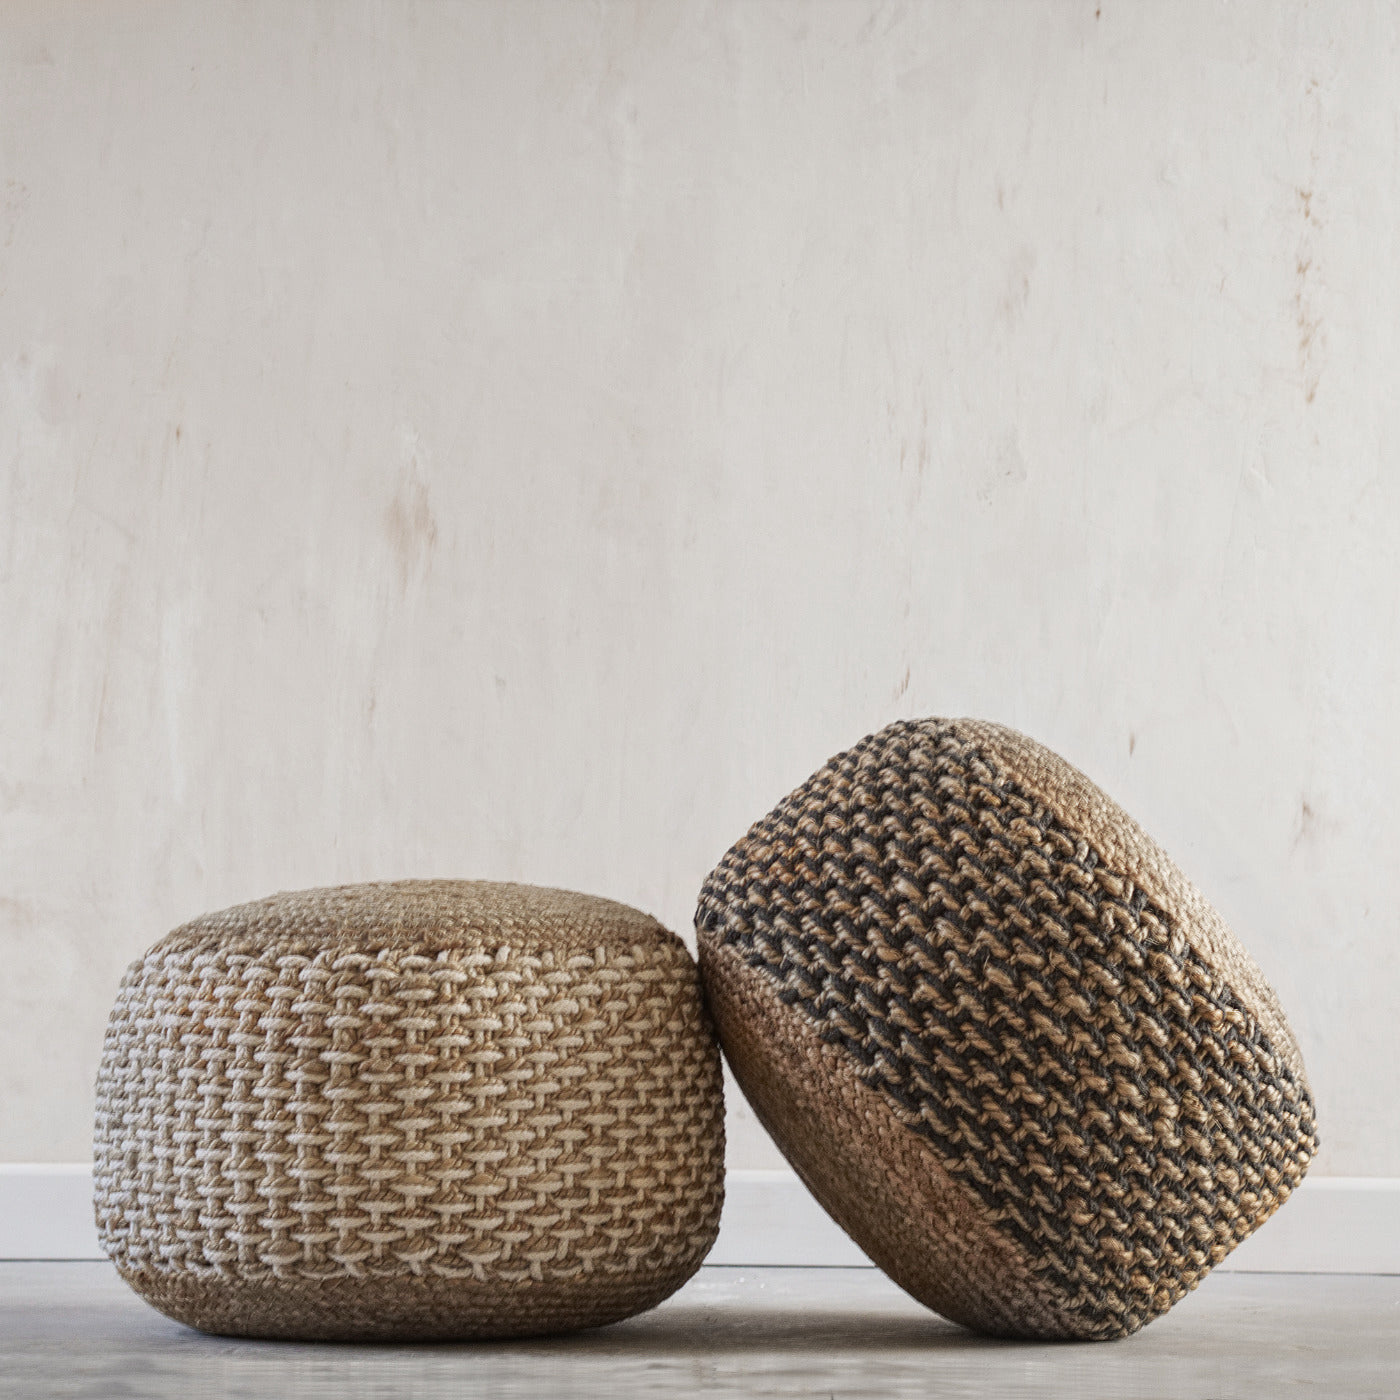 Moroccan living room accessories - pouffes and ottomans